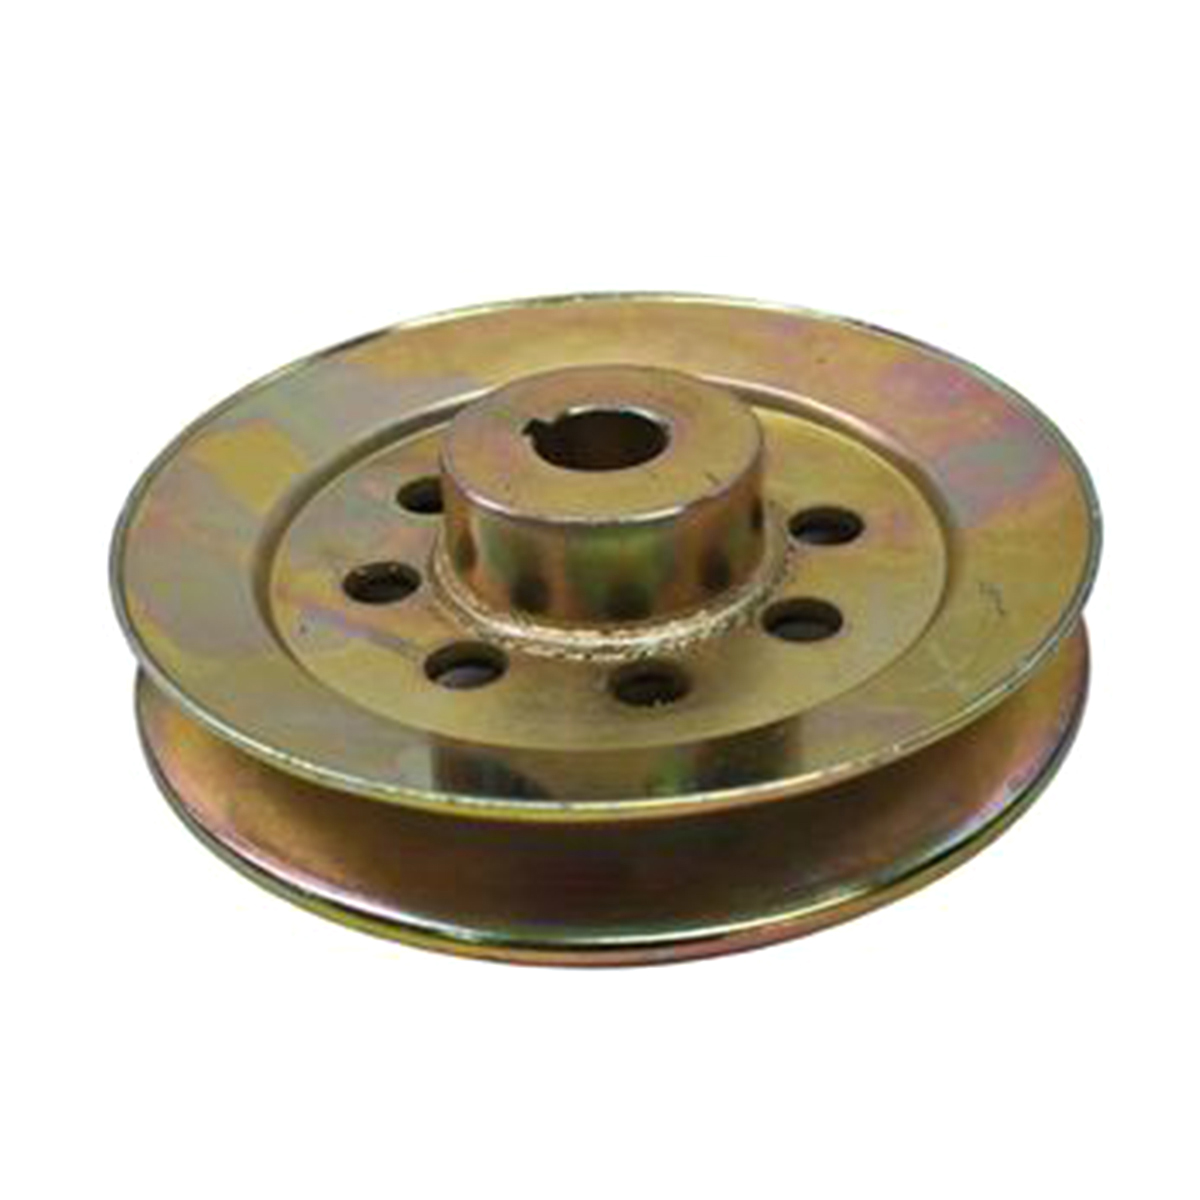 200041 Dixie Chopper Pulley 5.25